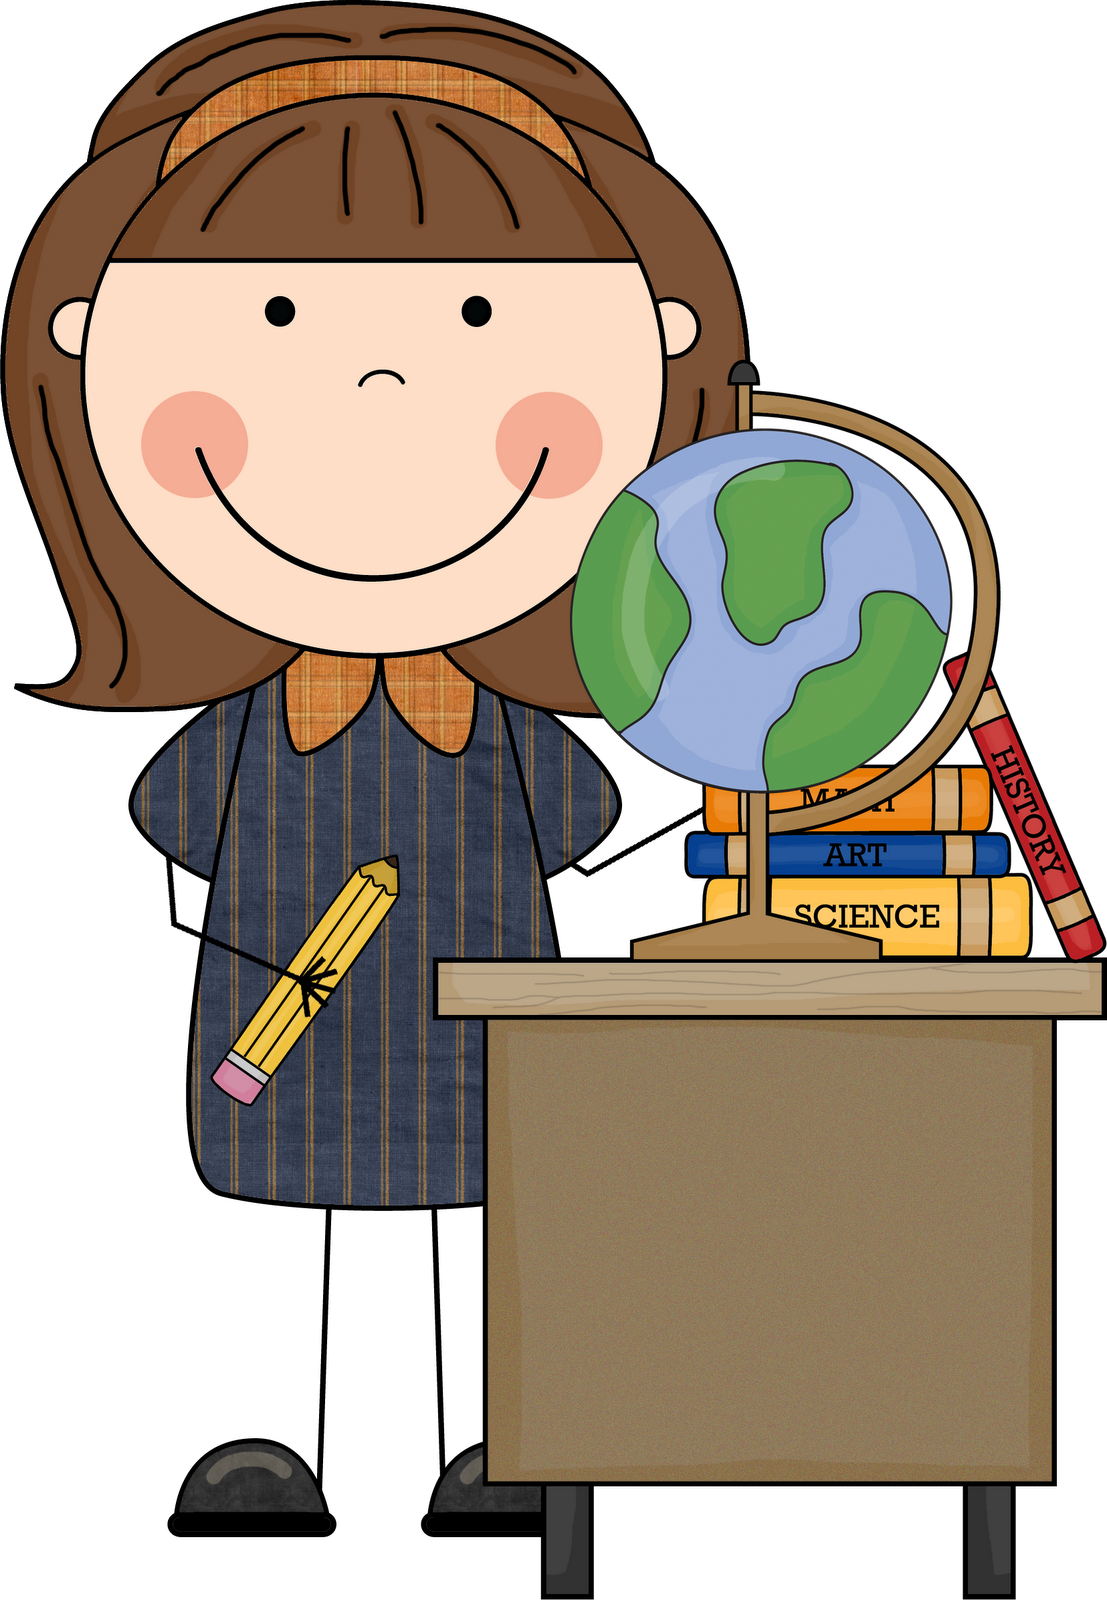 In arkansas school employees. Bullying clipart student picture download